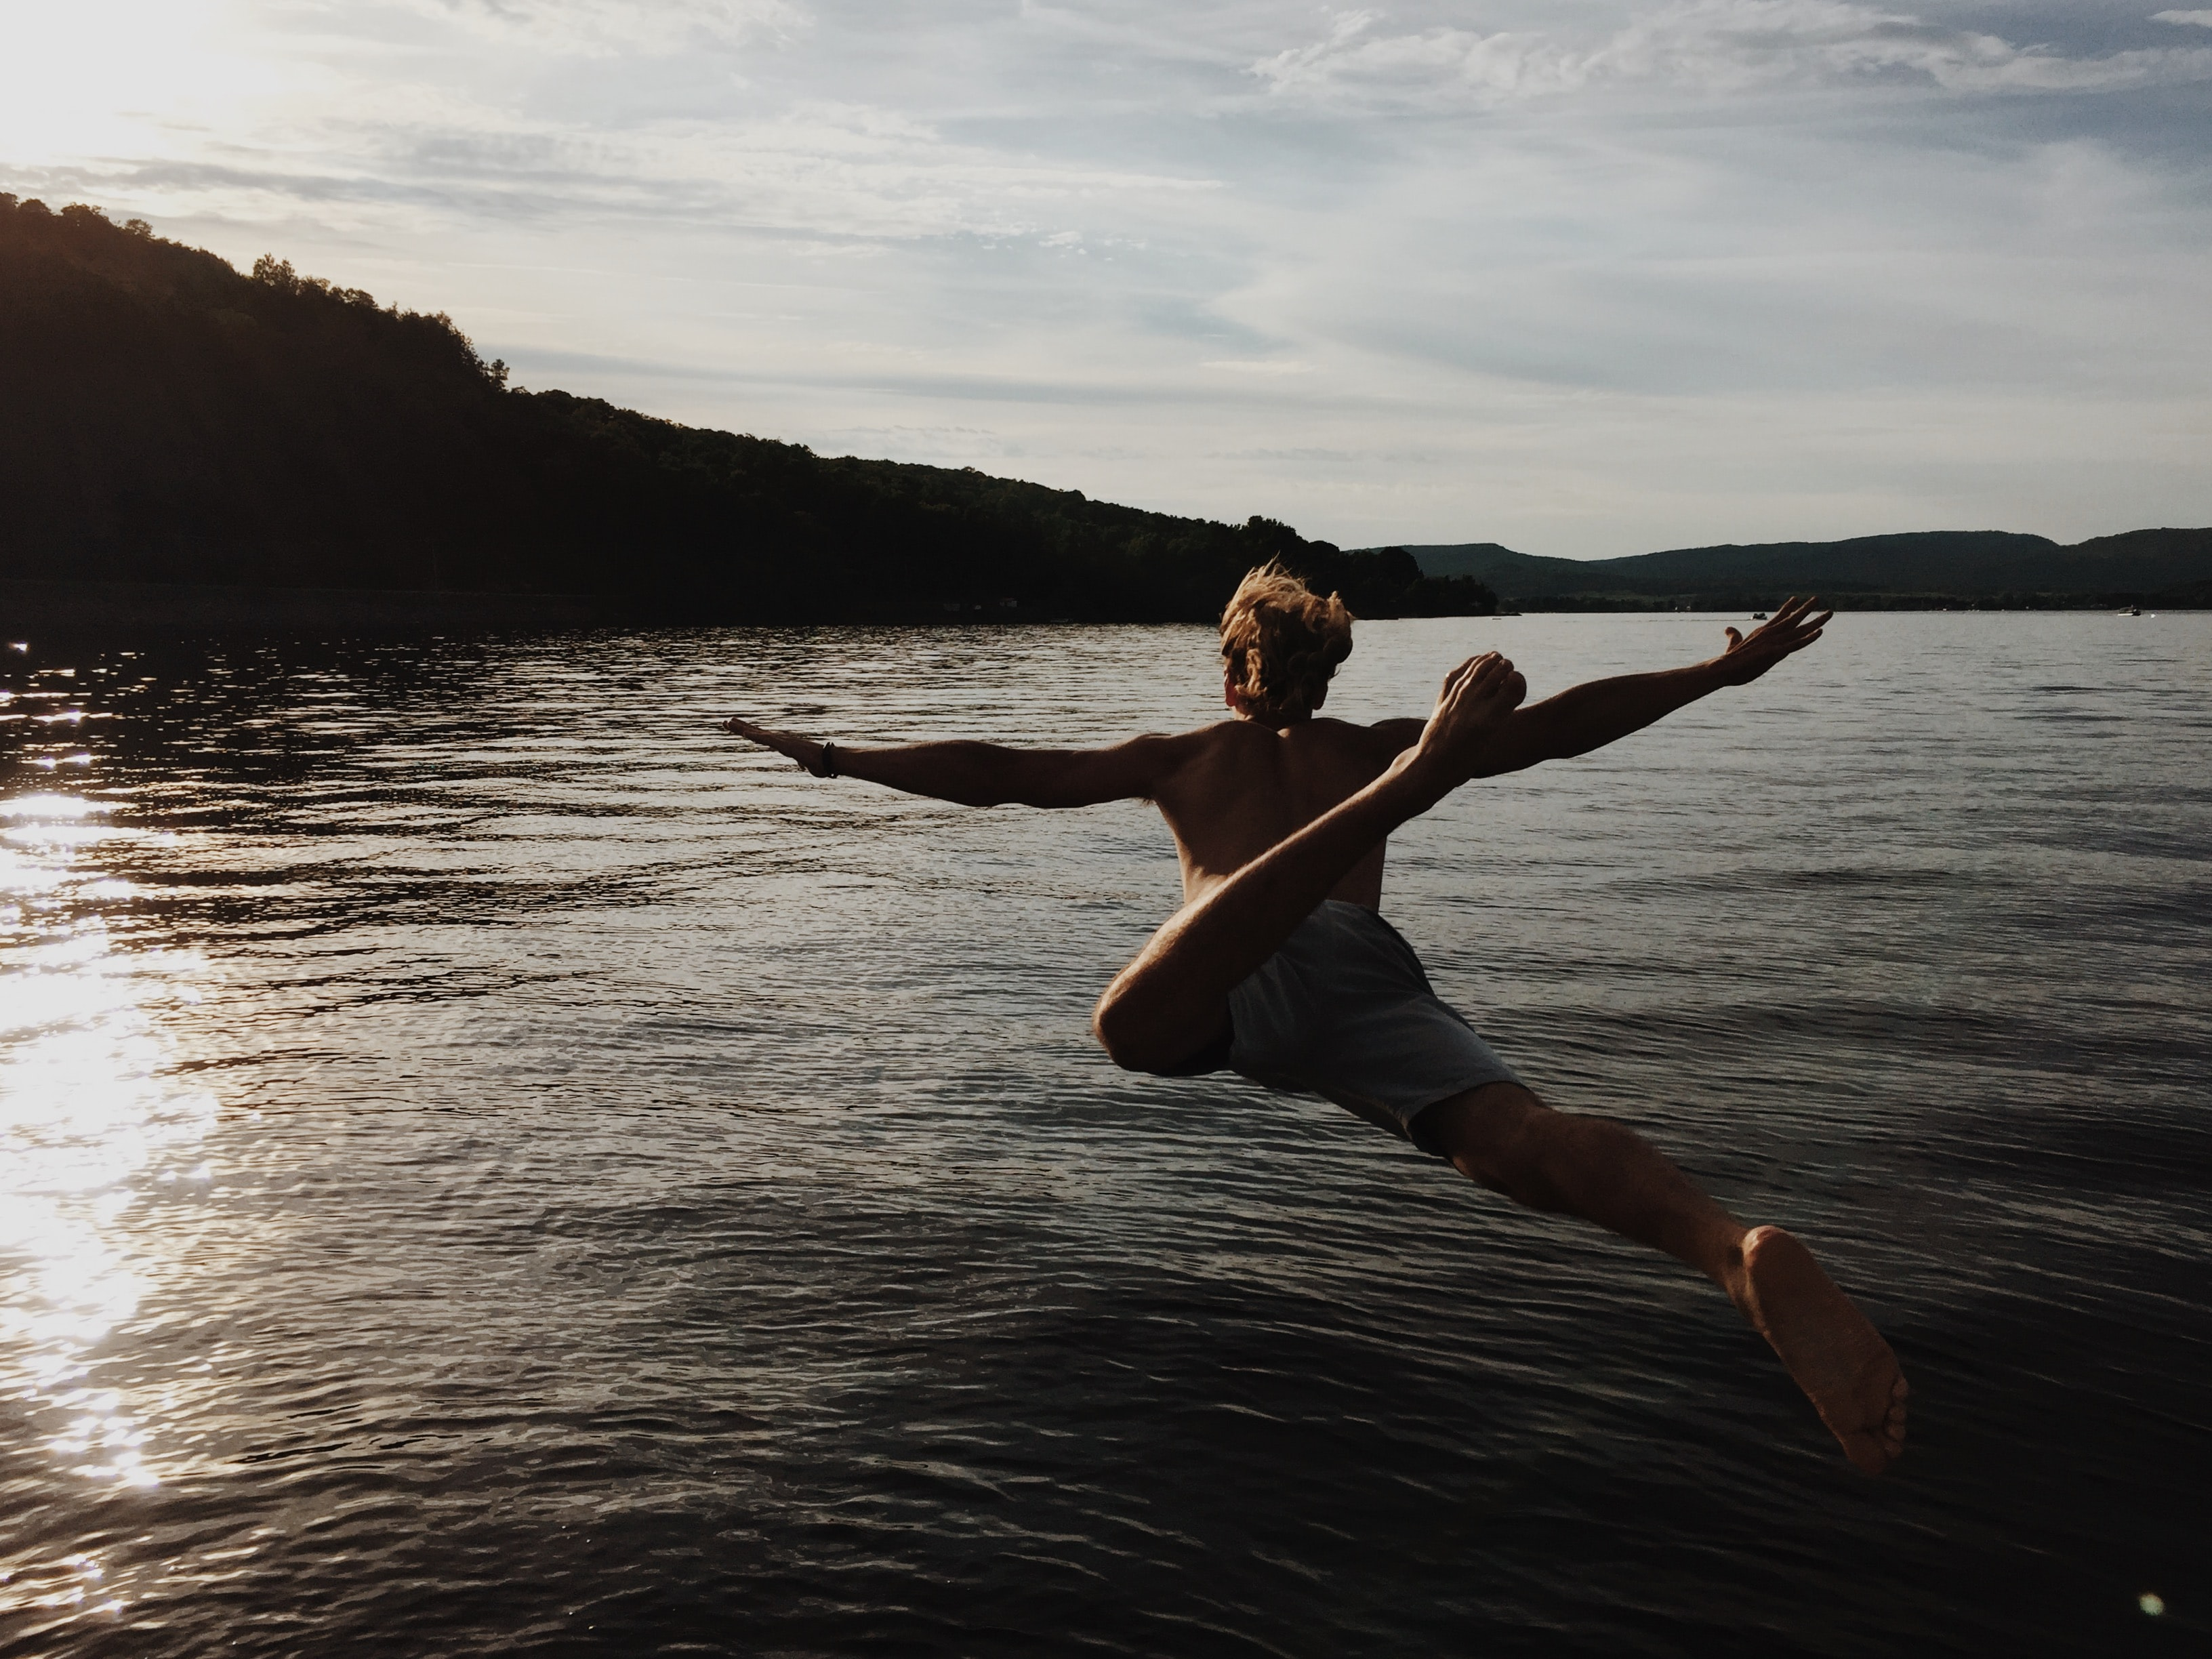 A man in swimwear jumping into the lake during sunset